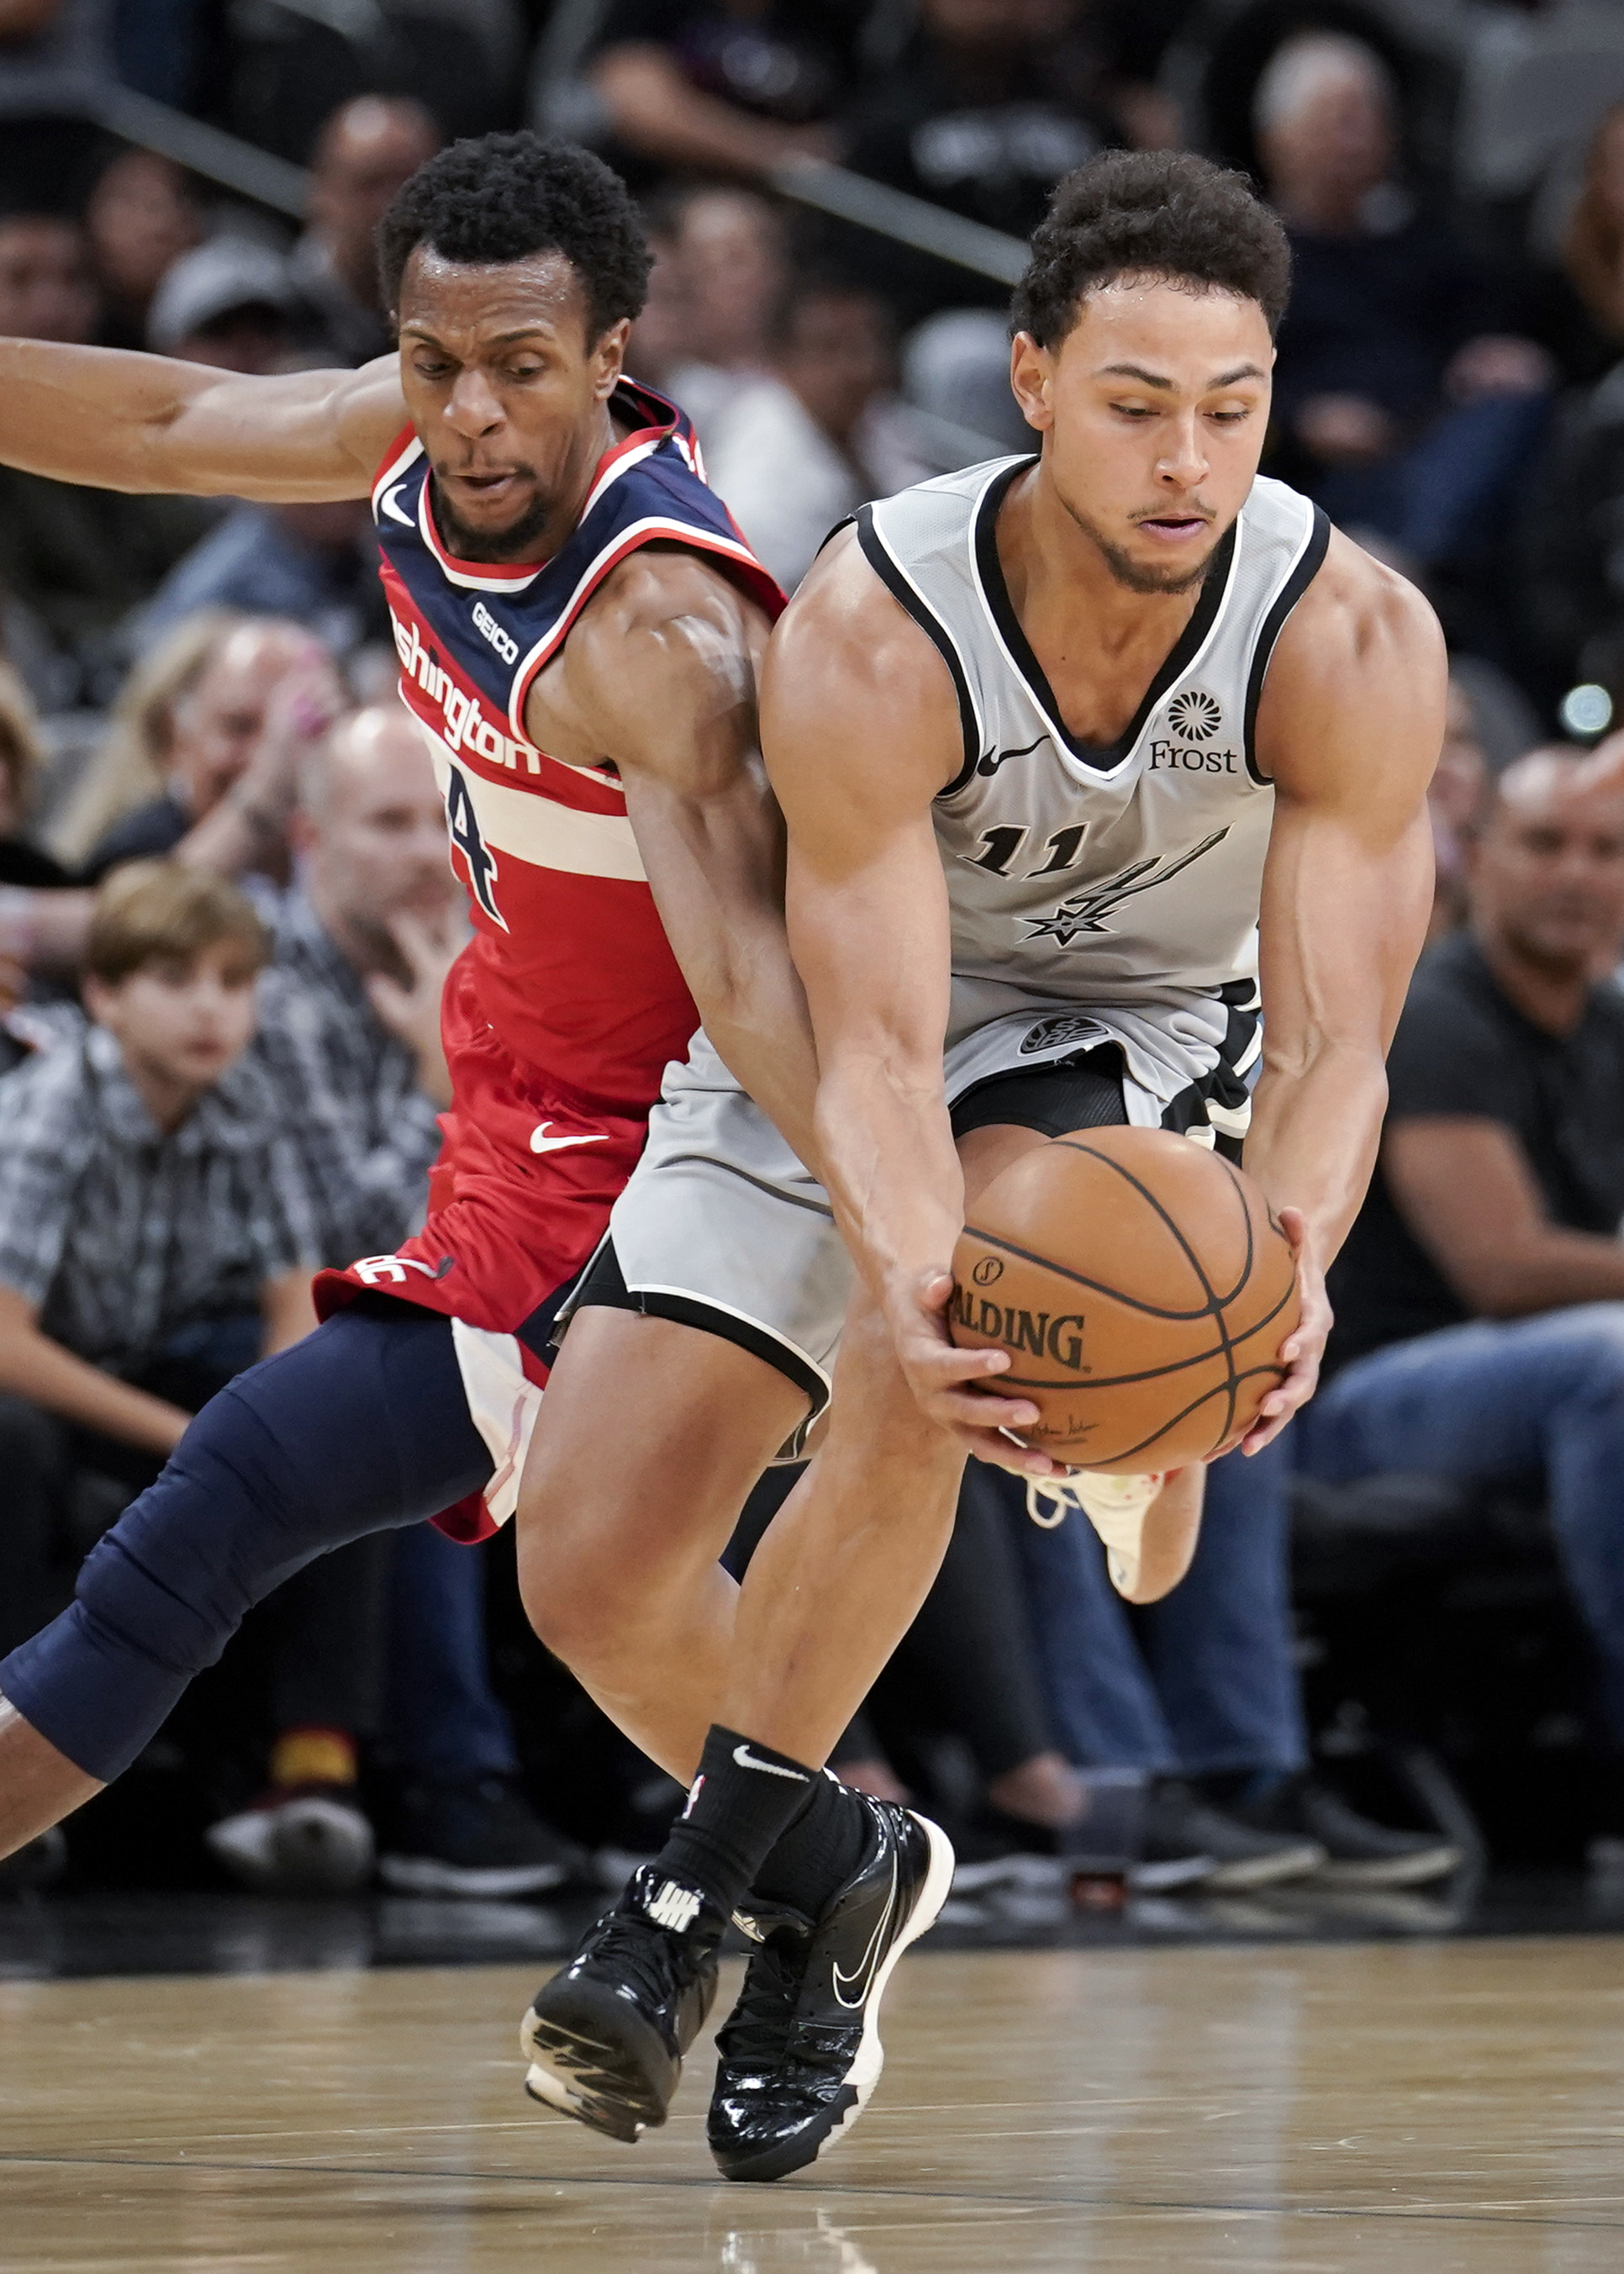 DeRozan's late shot sends Spurs to 124-122 win over Wizards